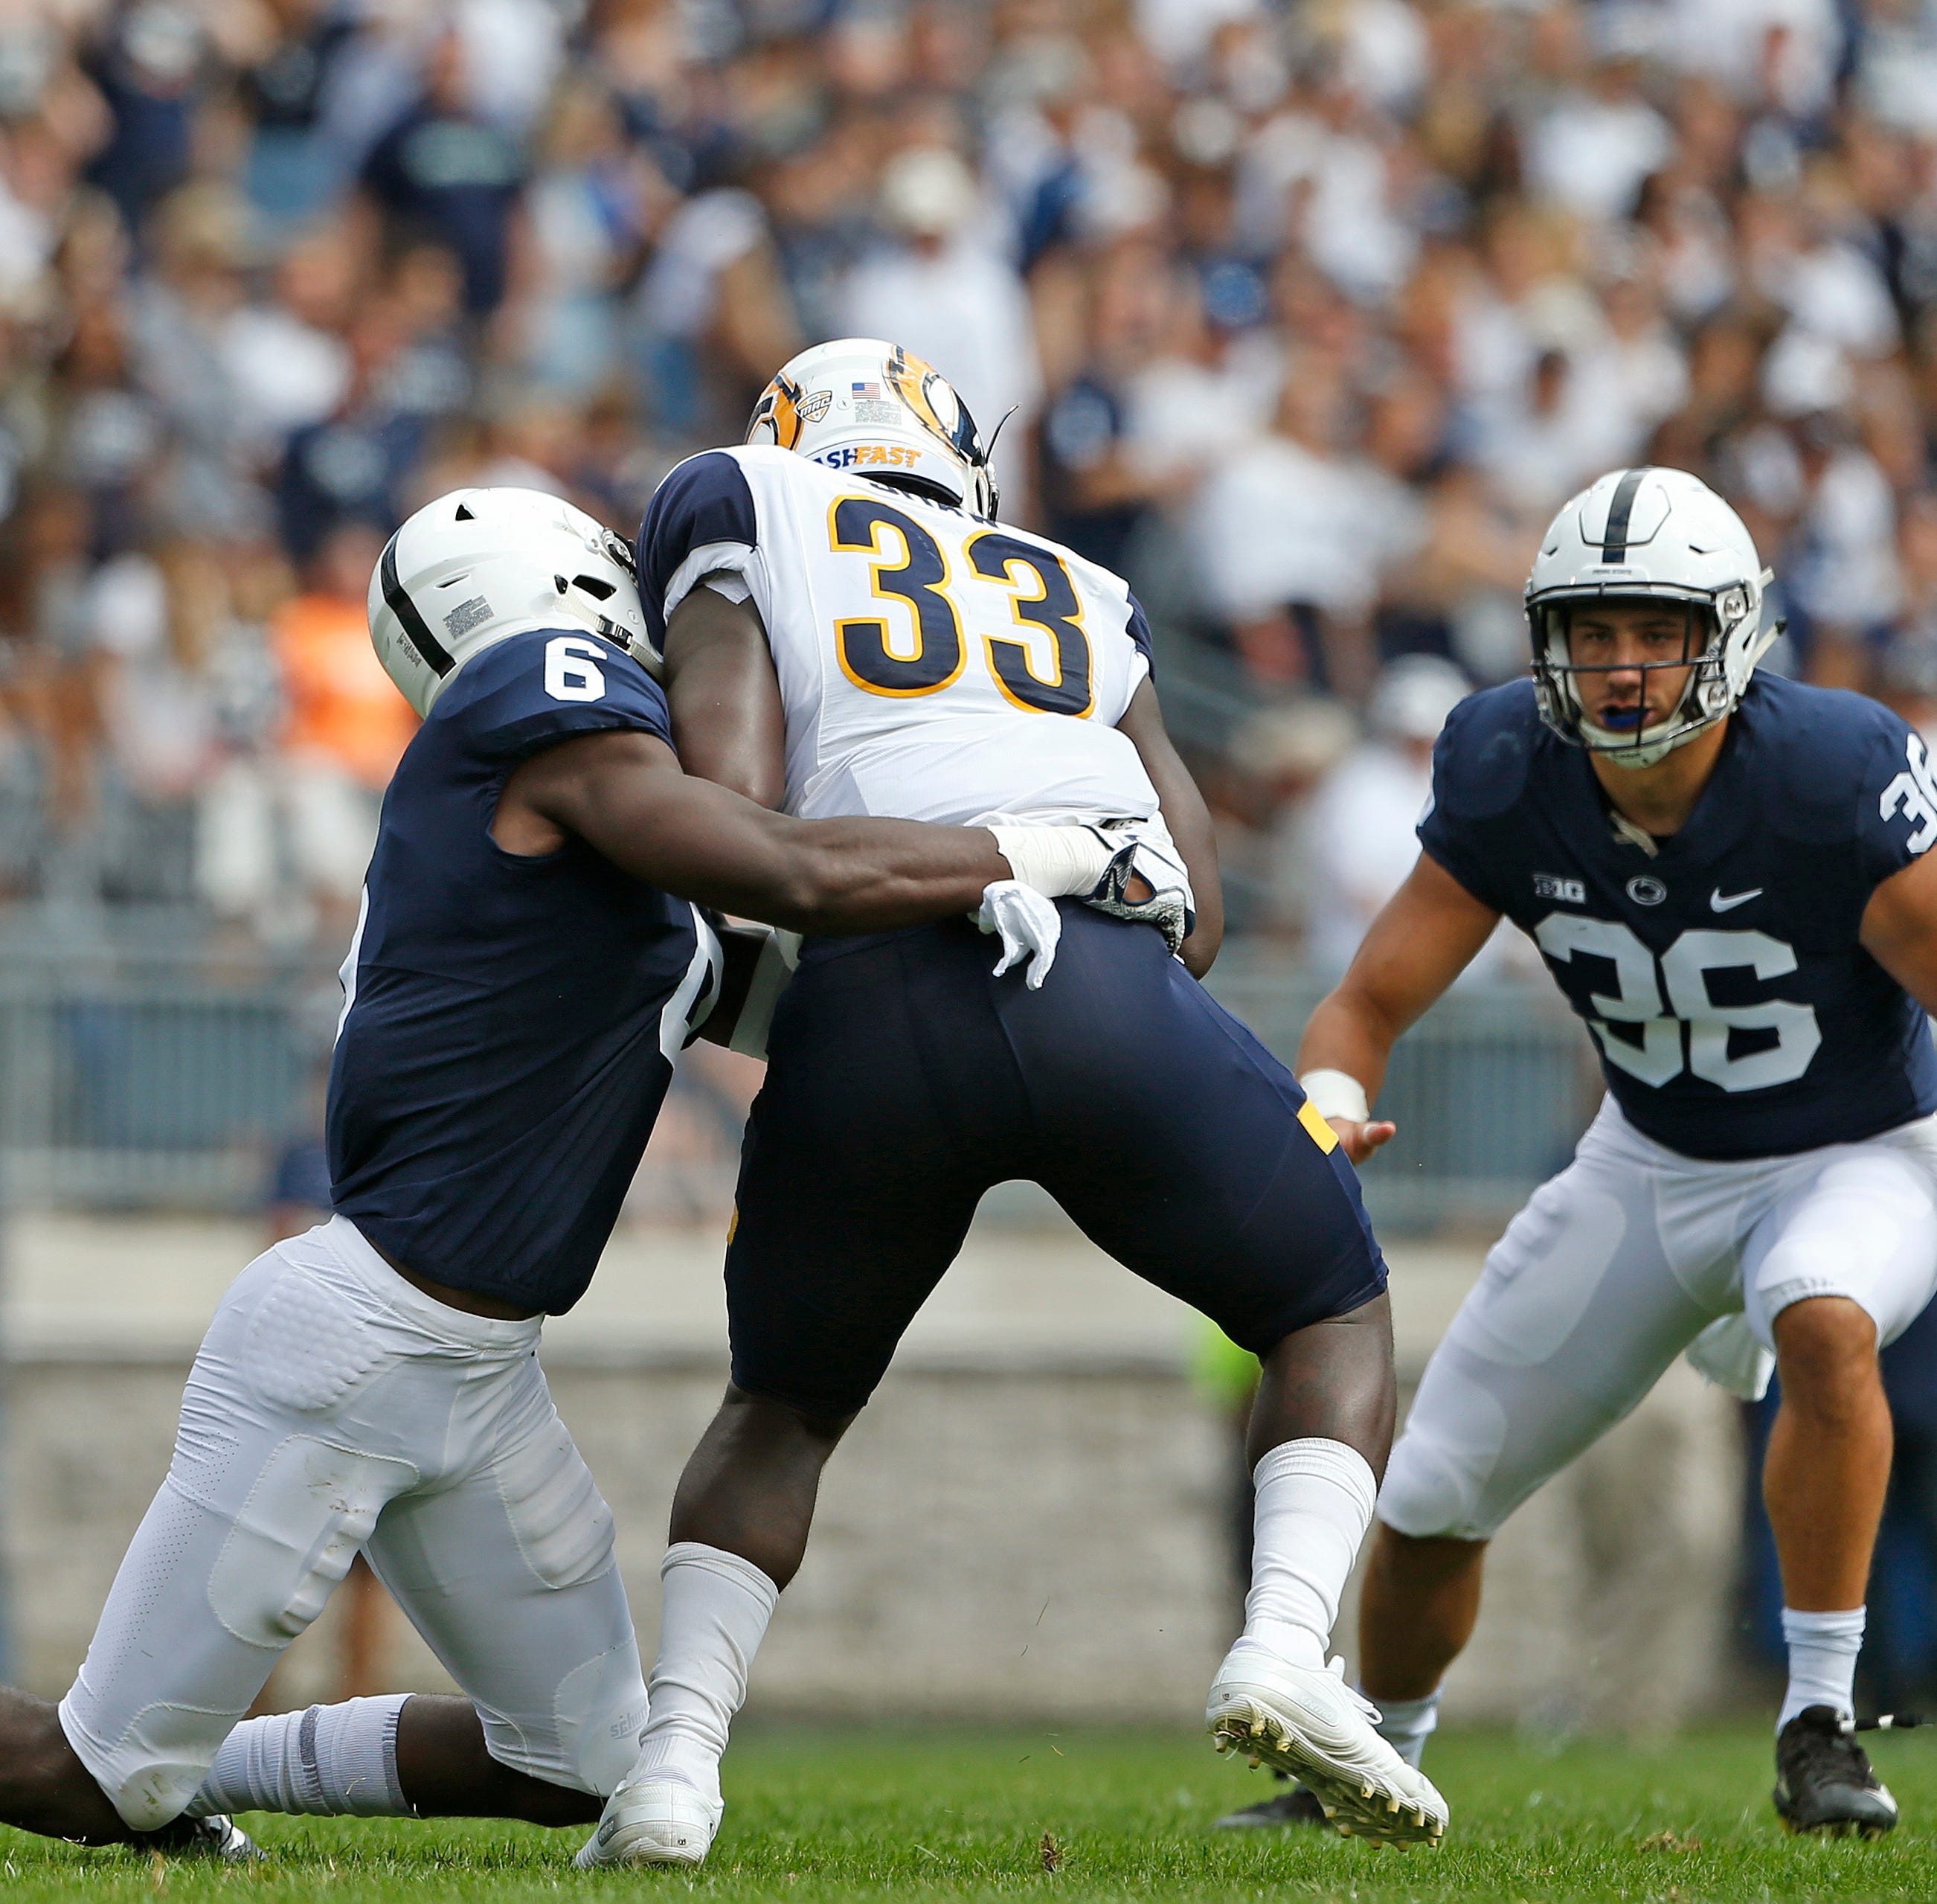 Here's how to watch the Penn State vs. Illinois Friday night football game